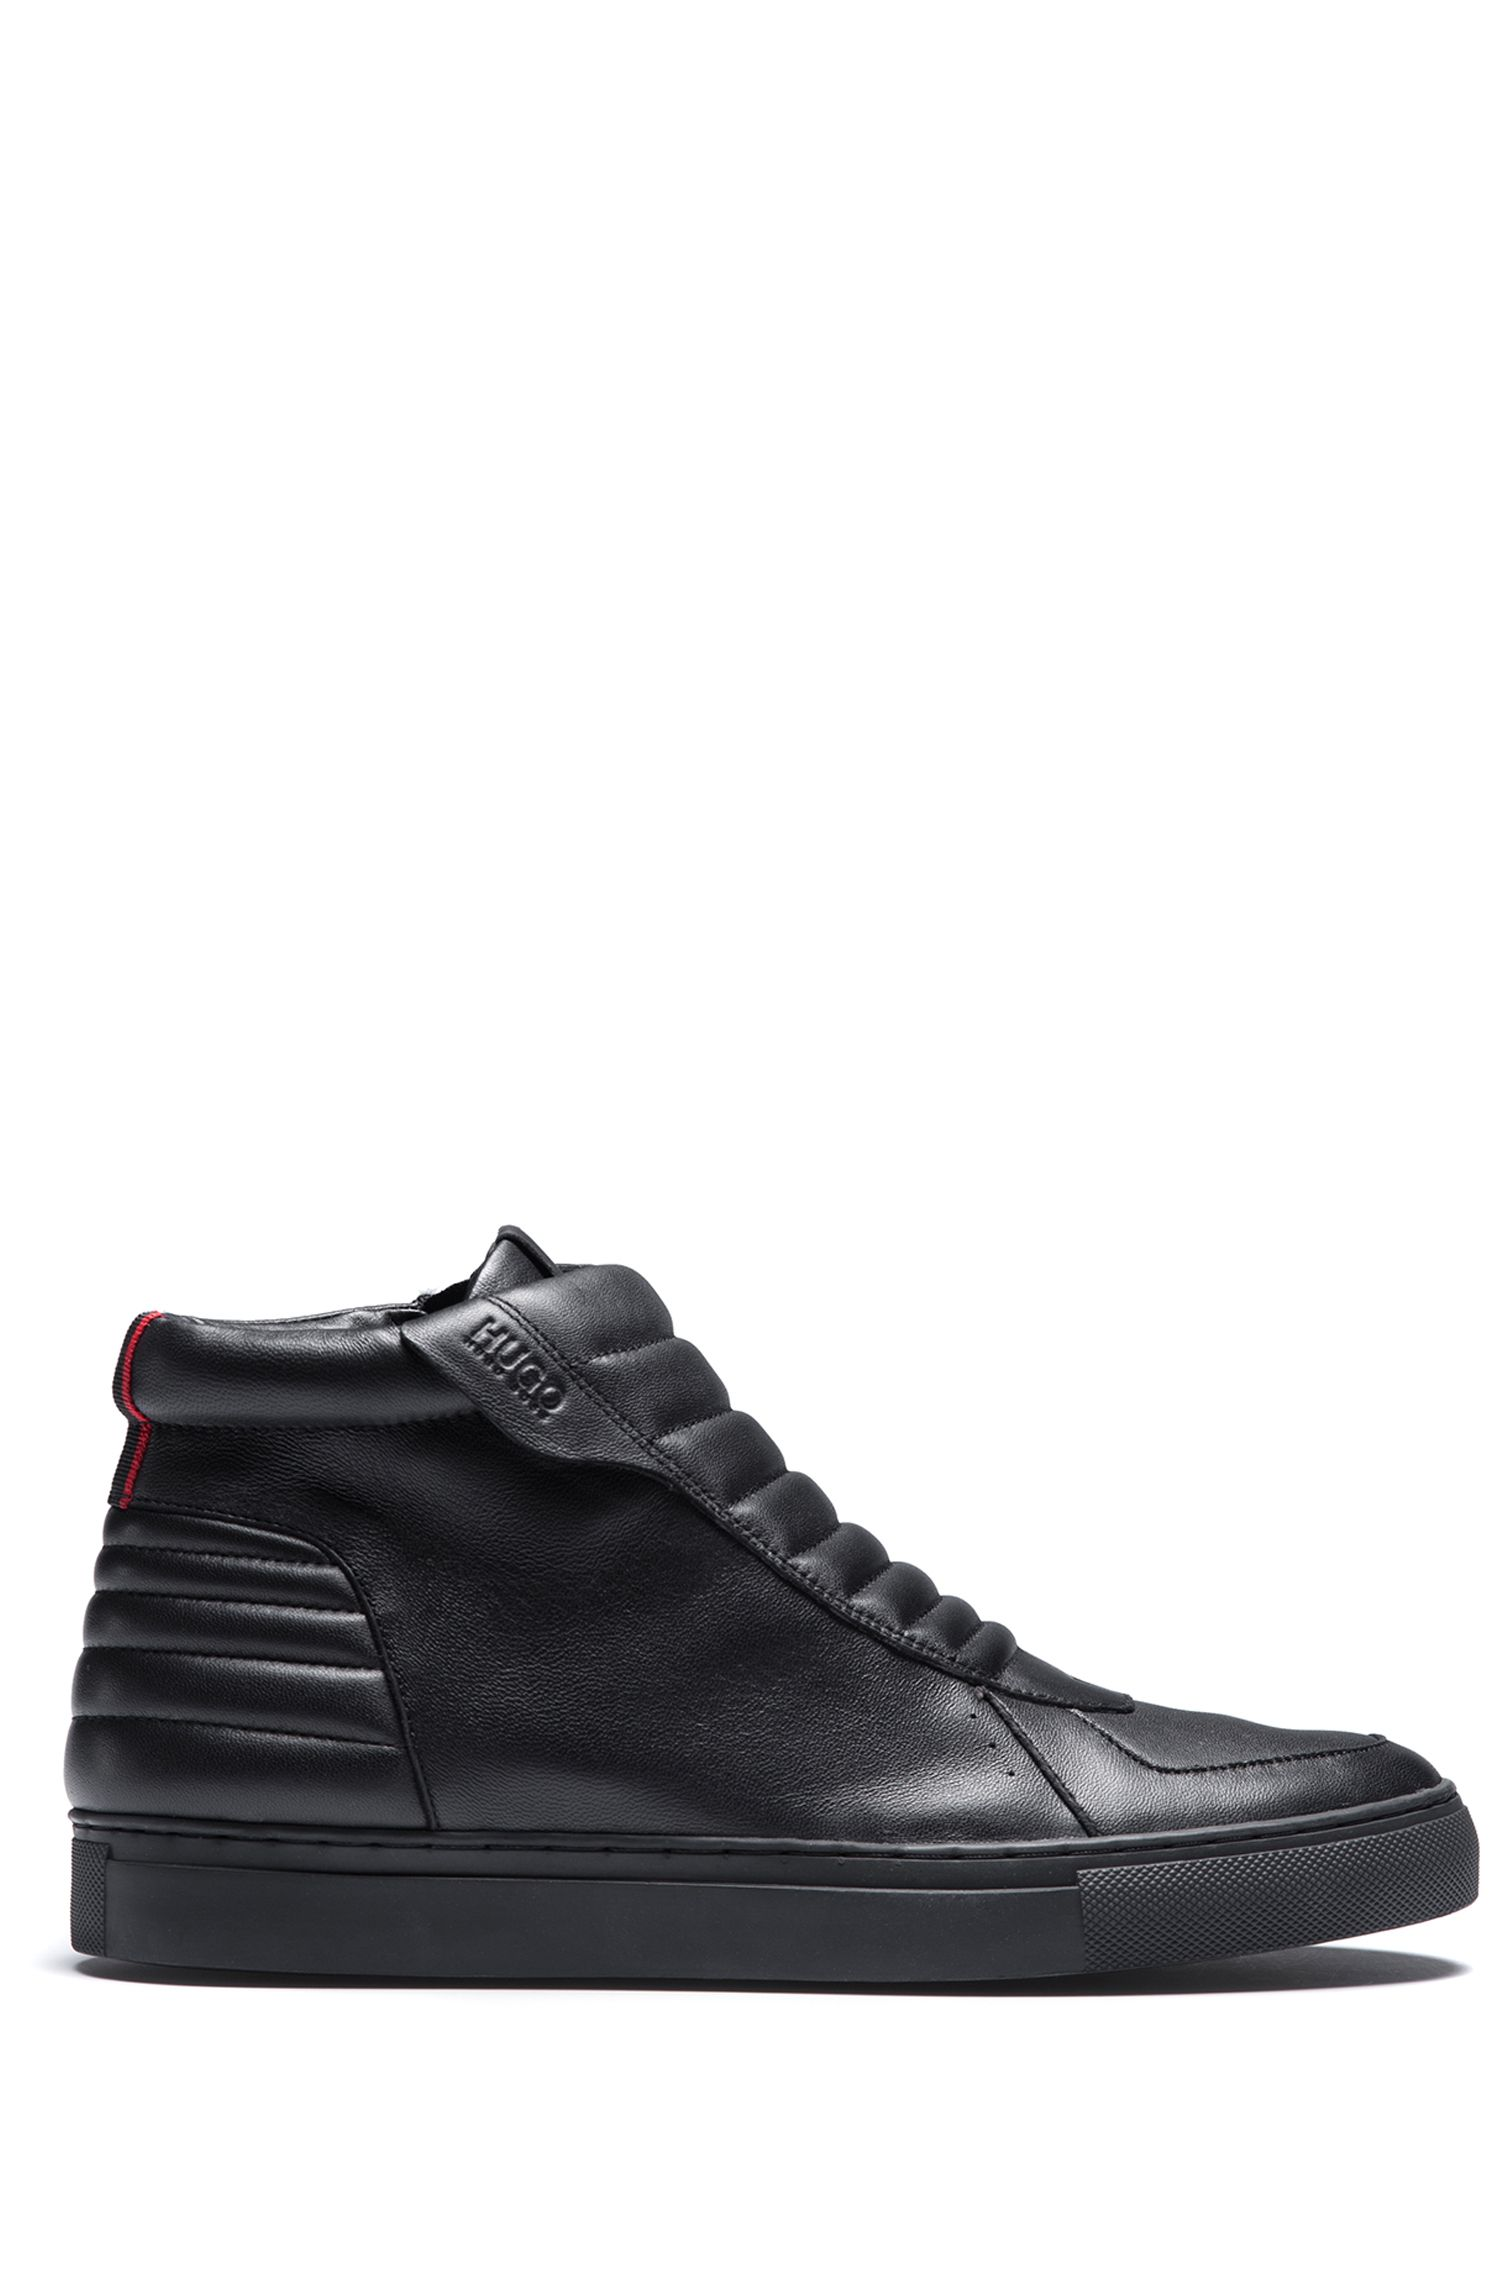 Sneakers high-top con zip in pelle nappa imbottita